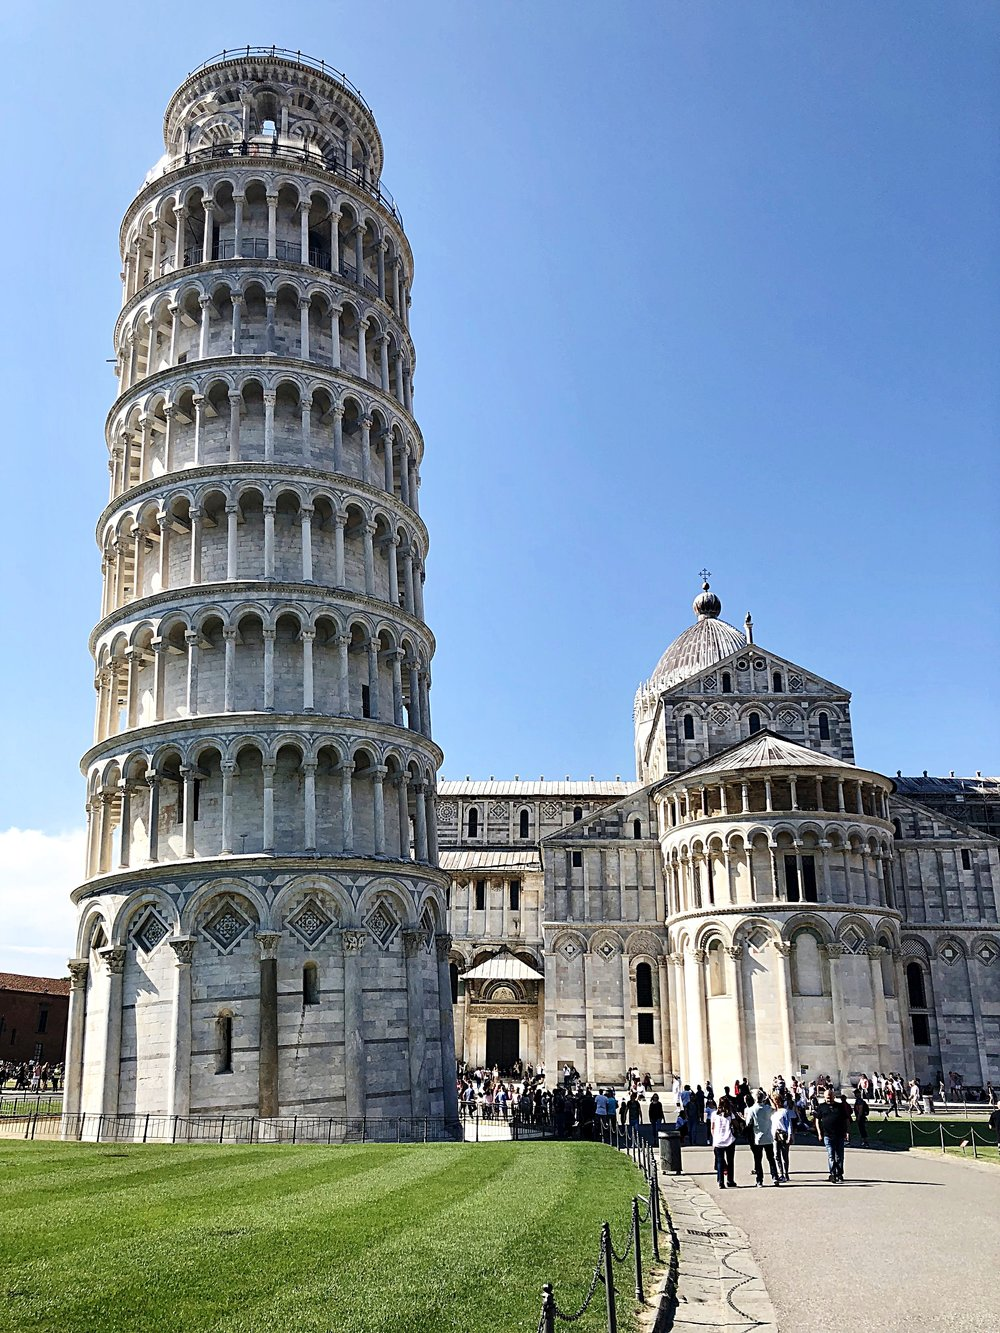 Who said the Tower at Pisa was leaning?